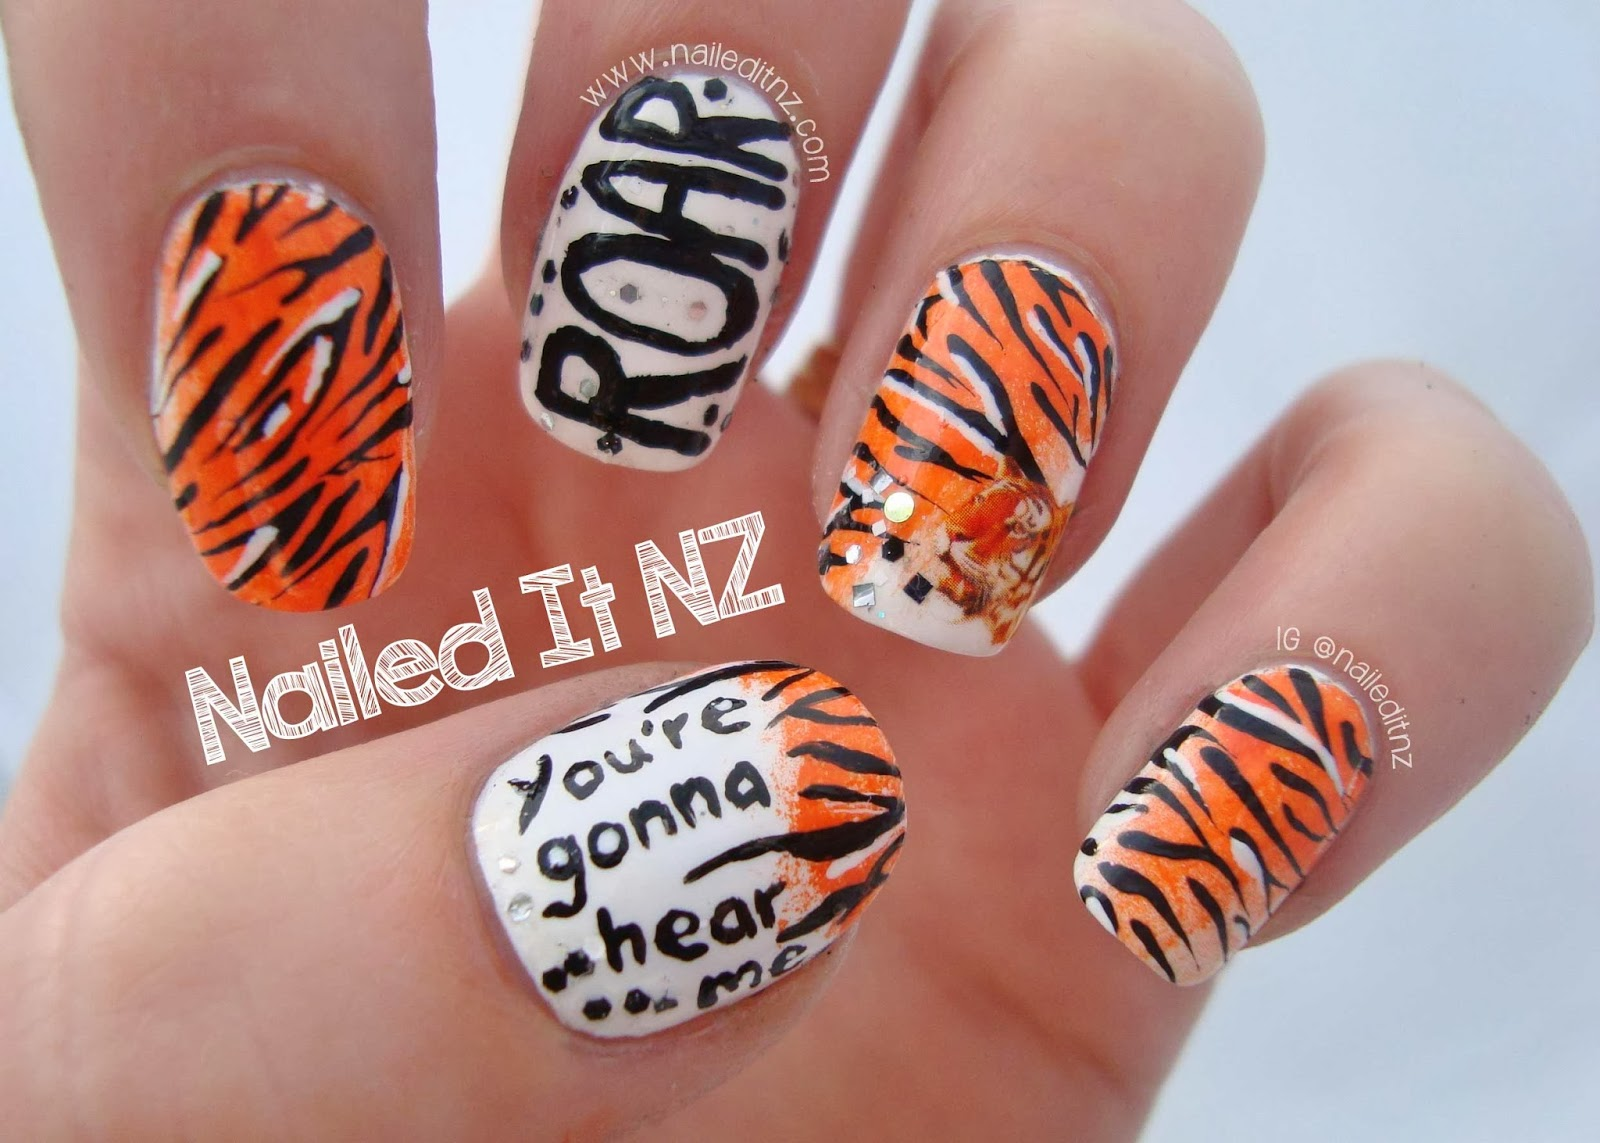 Katy perry nail art roar quite unique tiger stripe nails i normally avoid doing animal print these days ive done it too much in the past but this was a cool twist on it prinsesfo Image collections